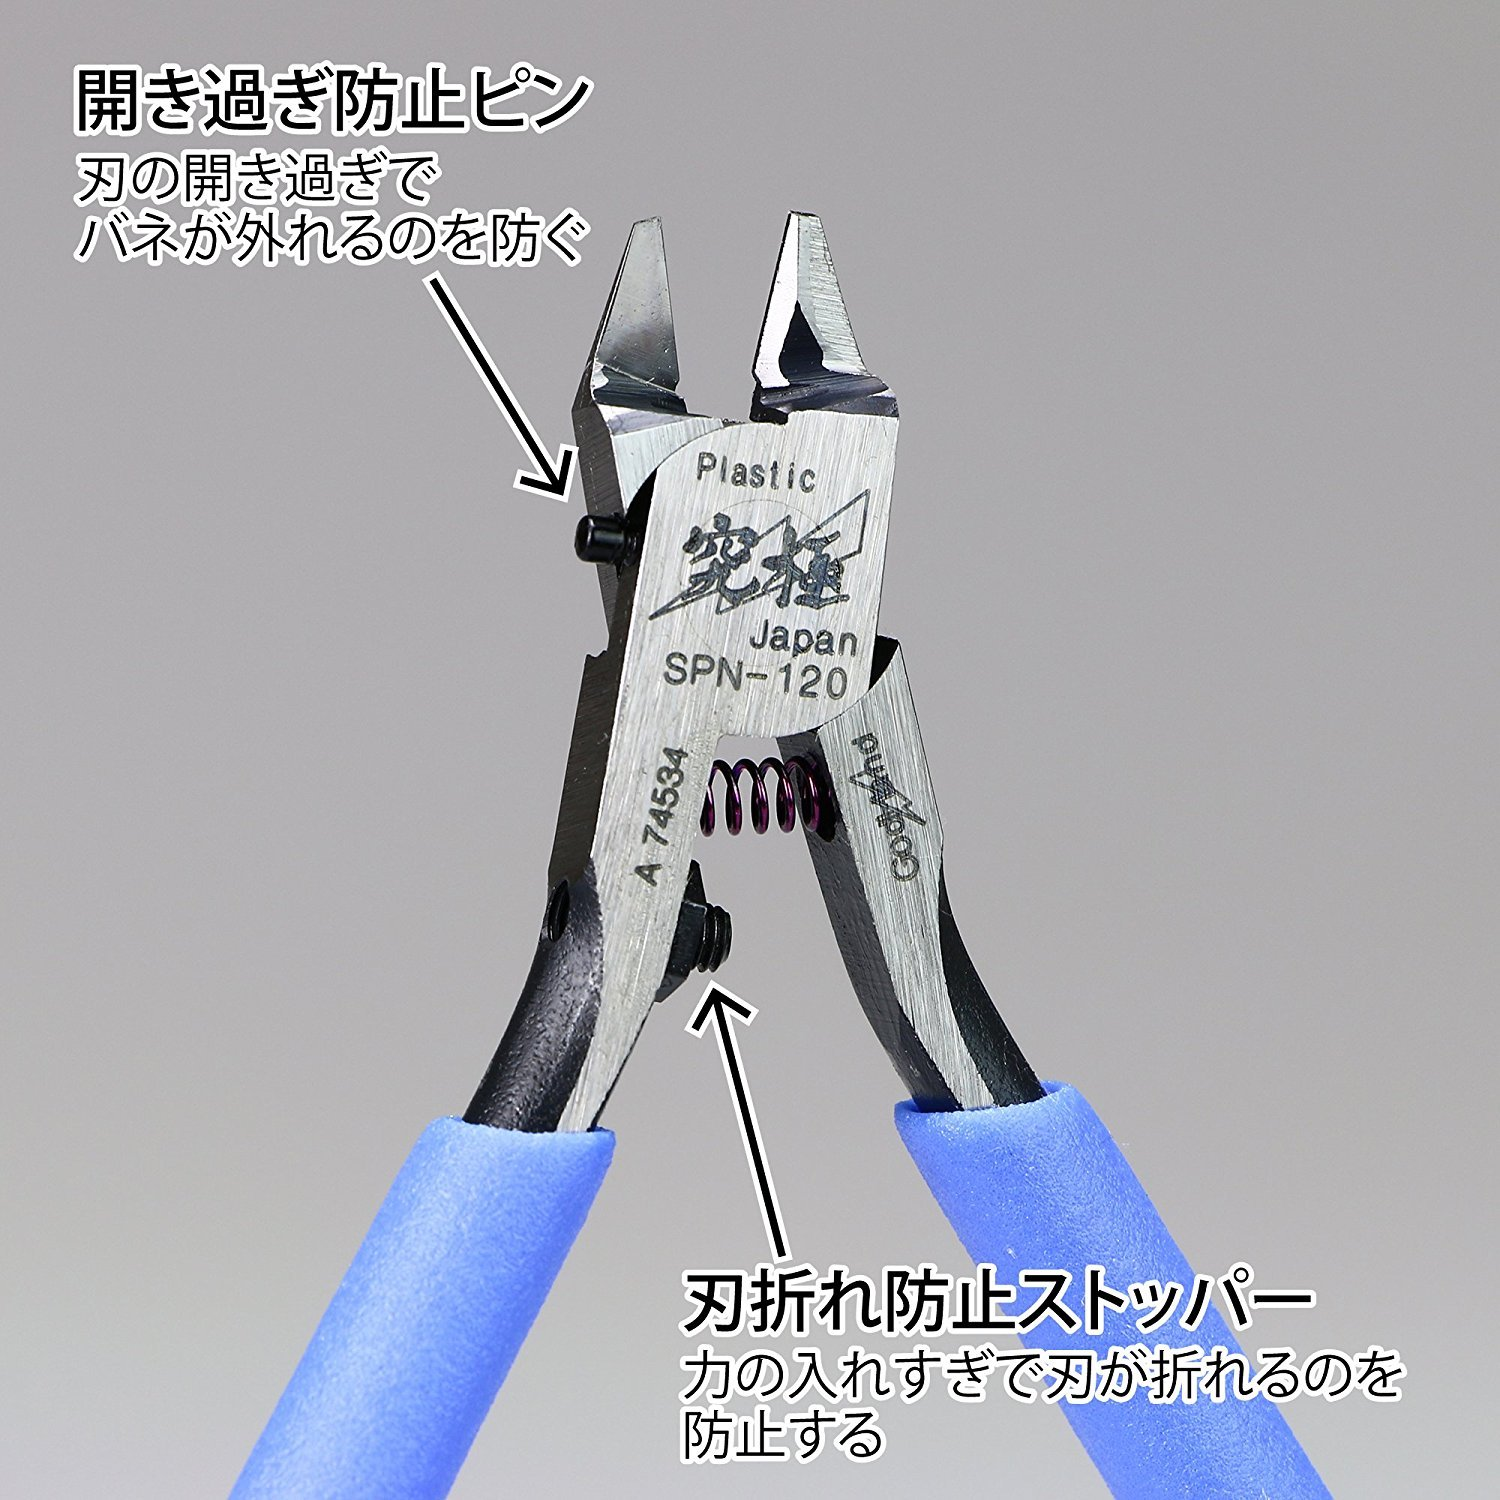 God Hand Ultimate Nipper 5.0 Plastic model Tools for GH-SPN-120 by God Hand (Image #4)